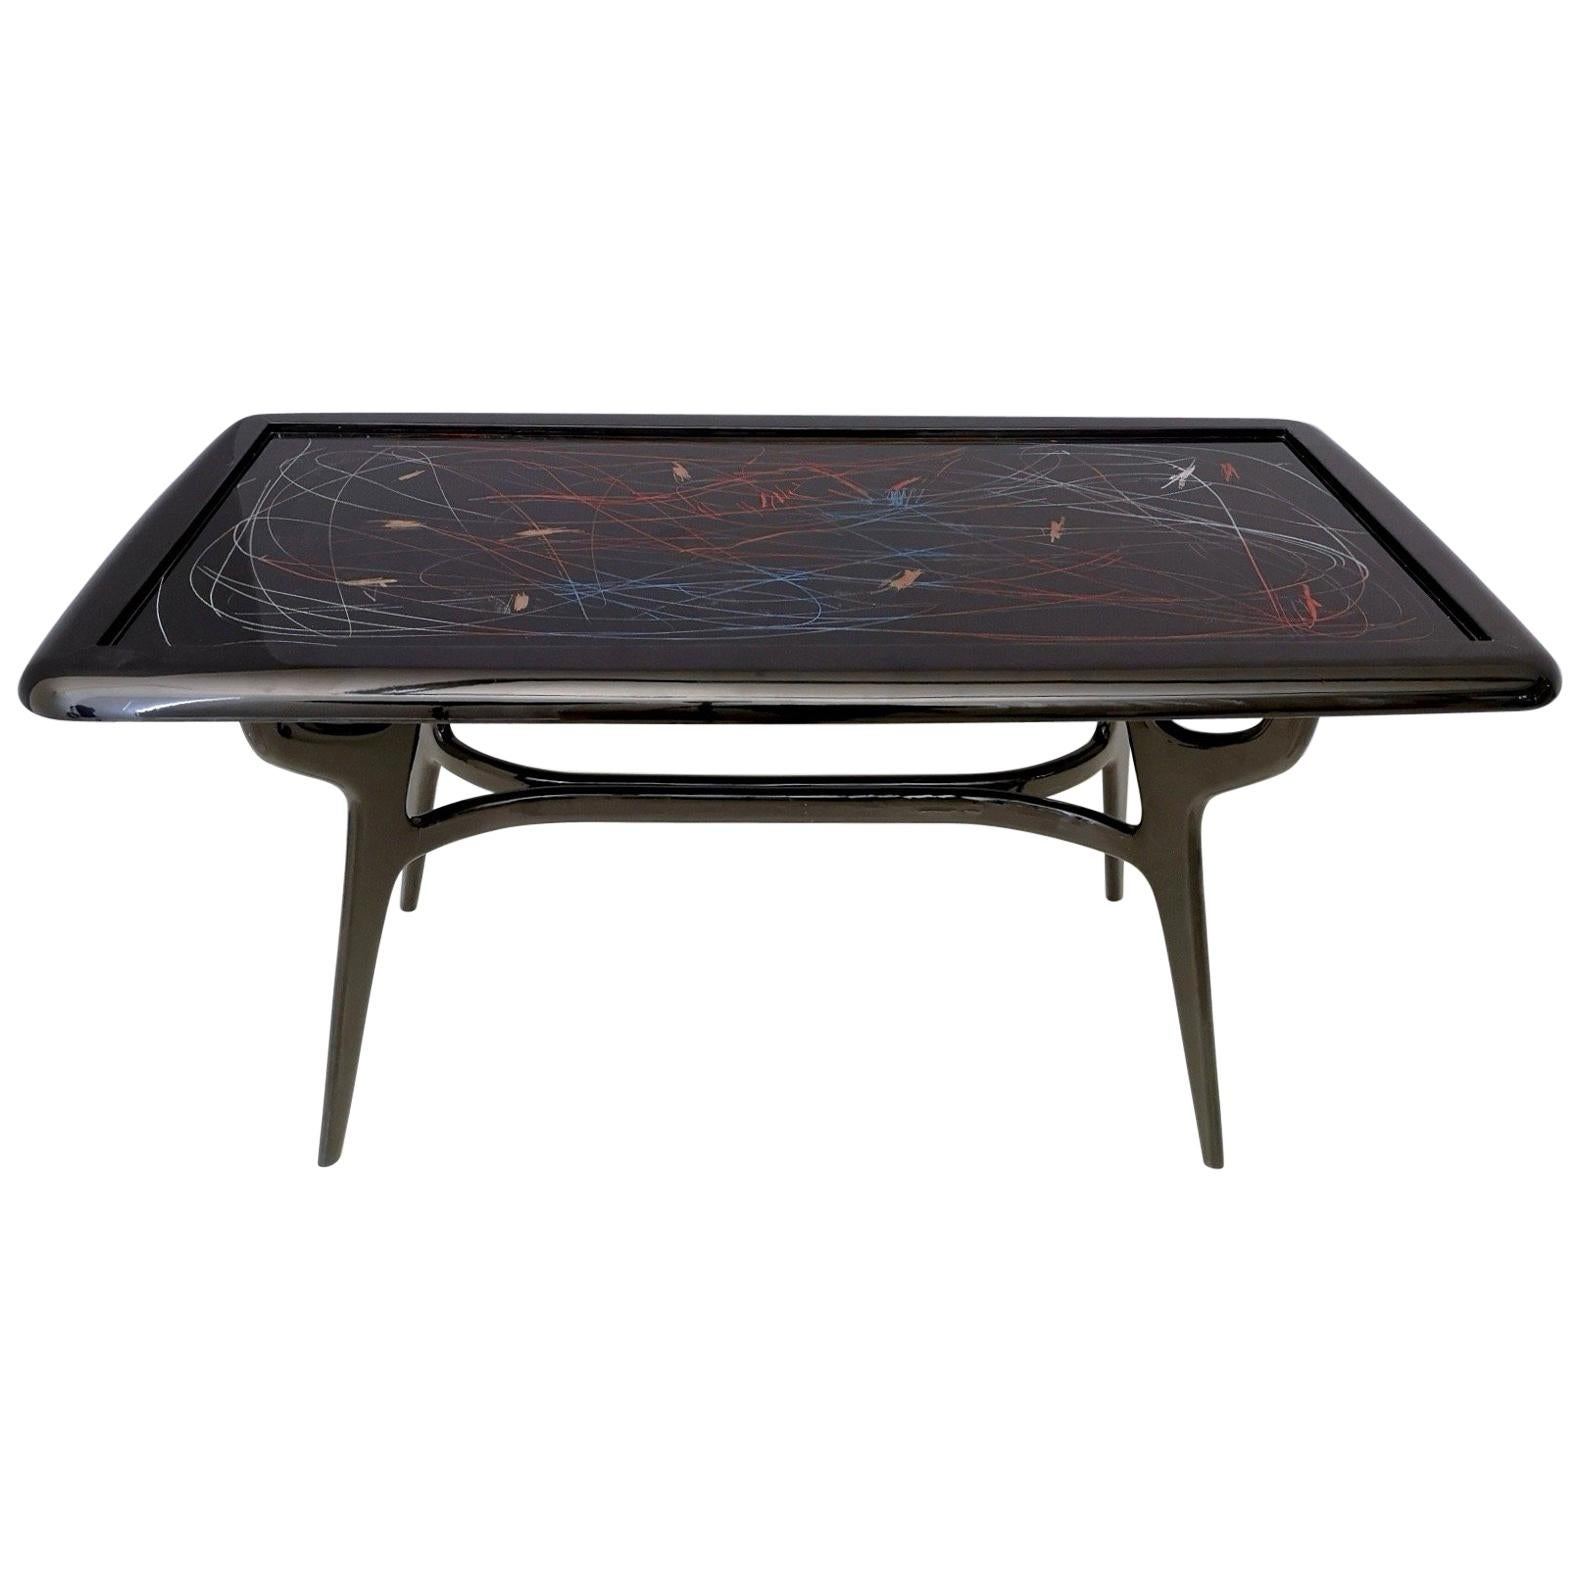 1950s Style Dining Table with Glass Top Lacquered by Enzio Wenk, Italy, 2019